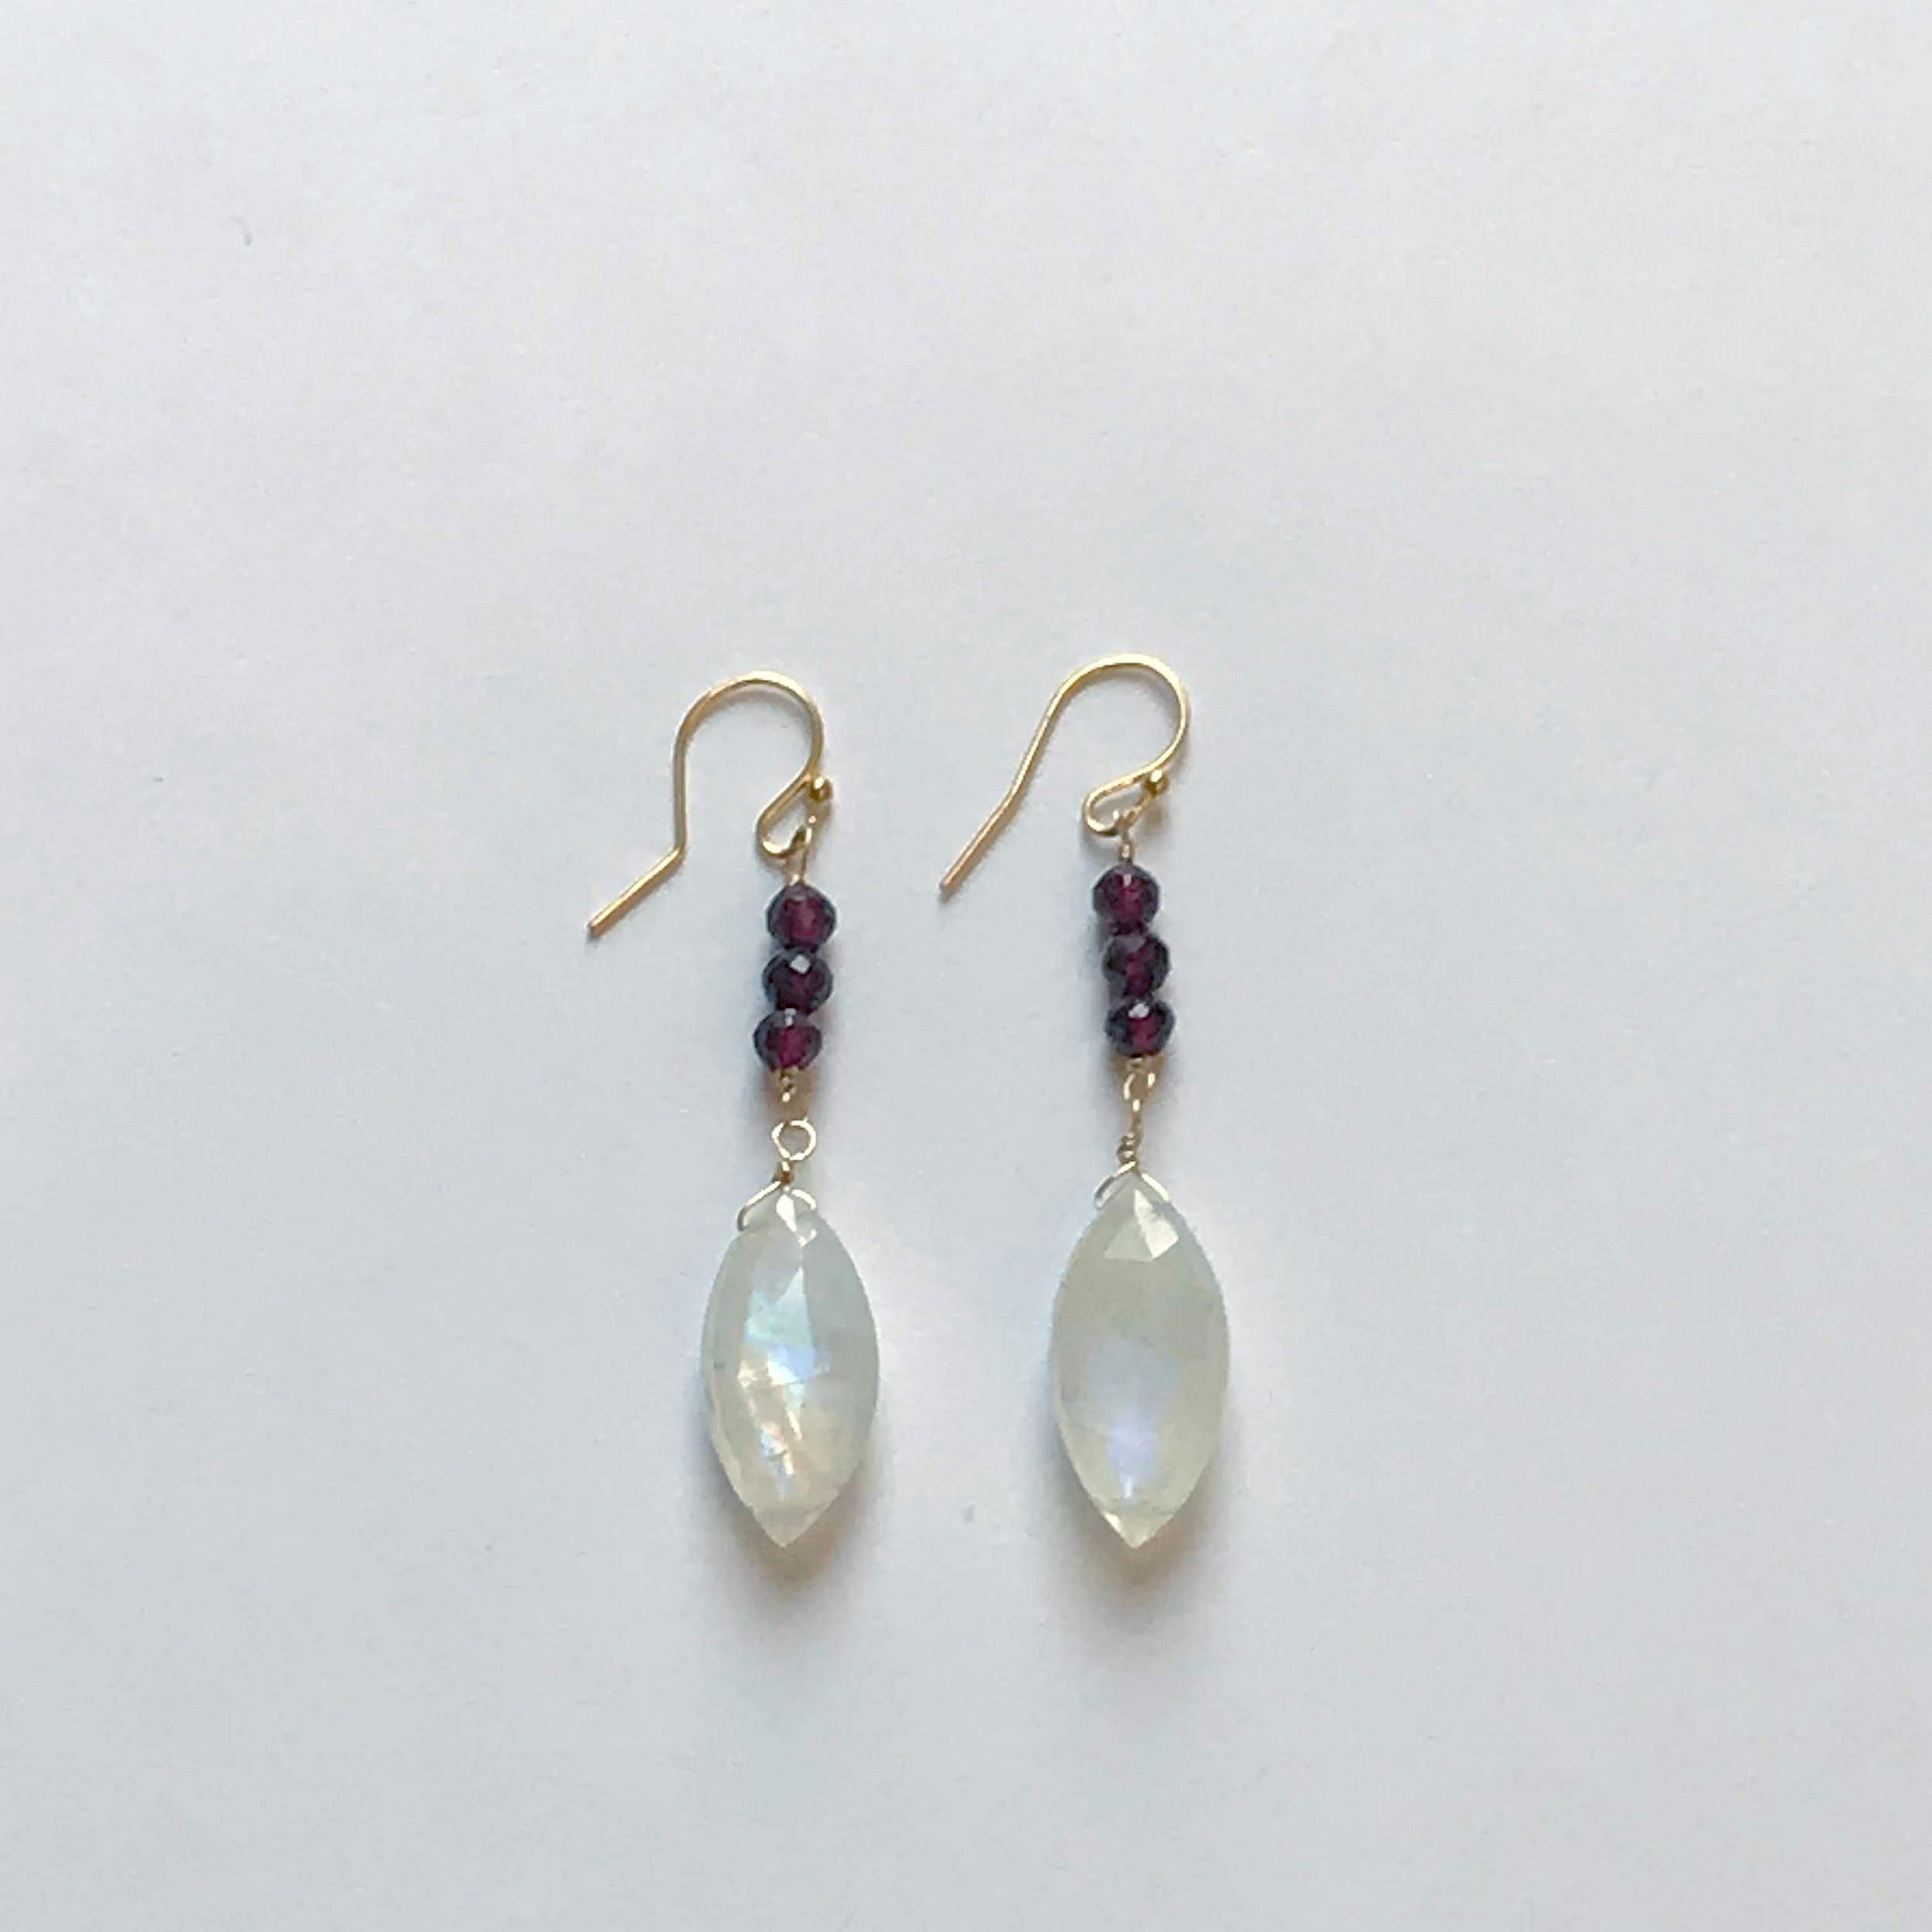 $225 Gold Filled Rainbow Moonstone Garnet Earrings